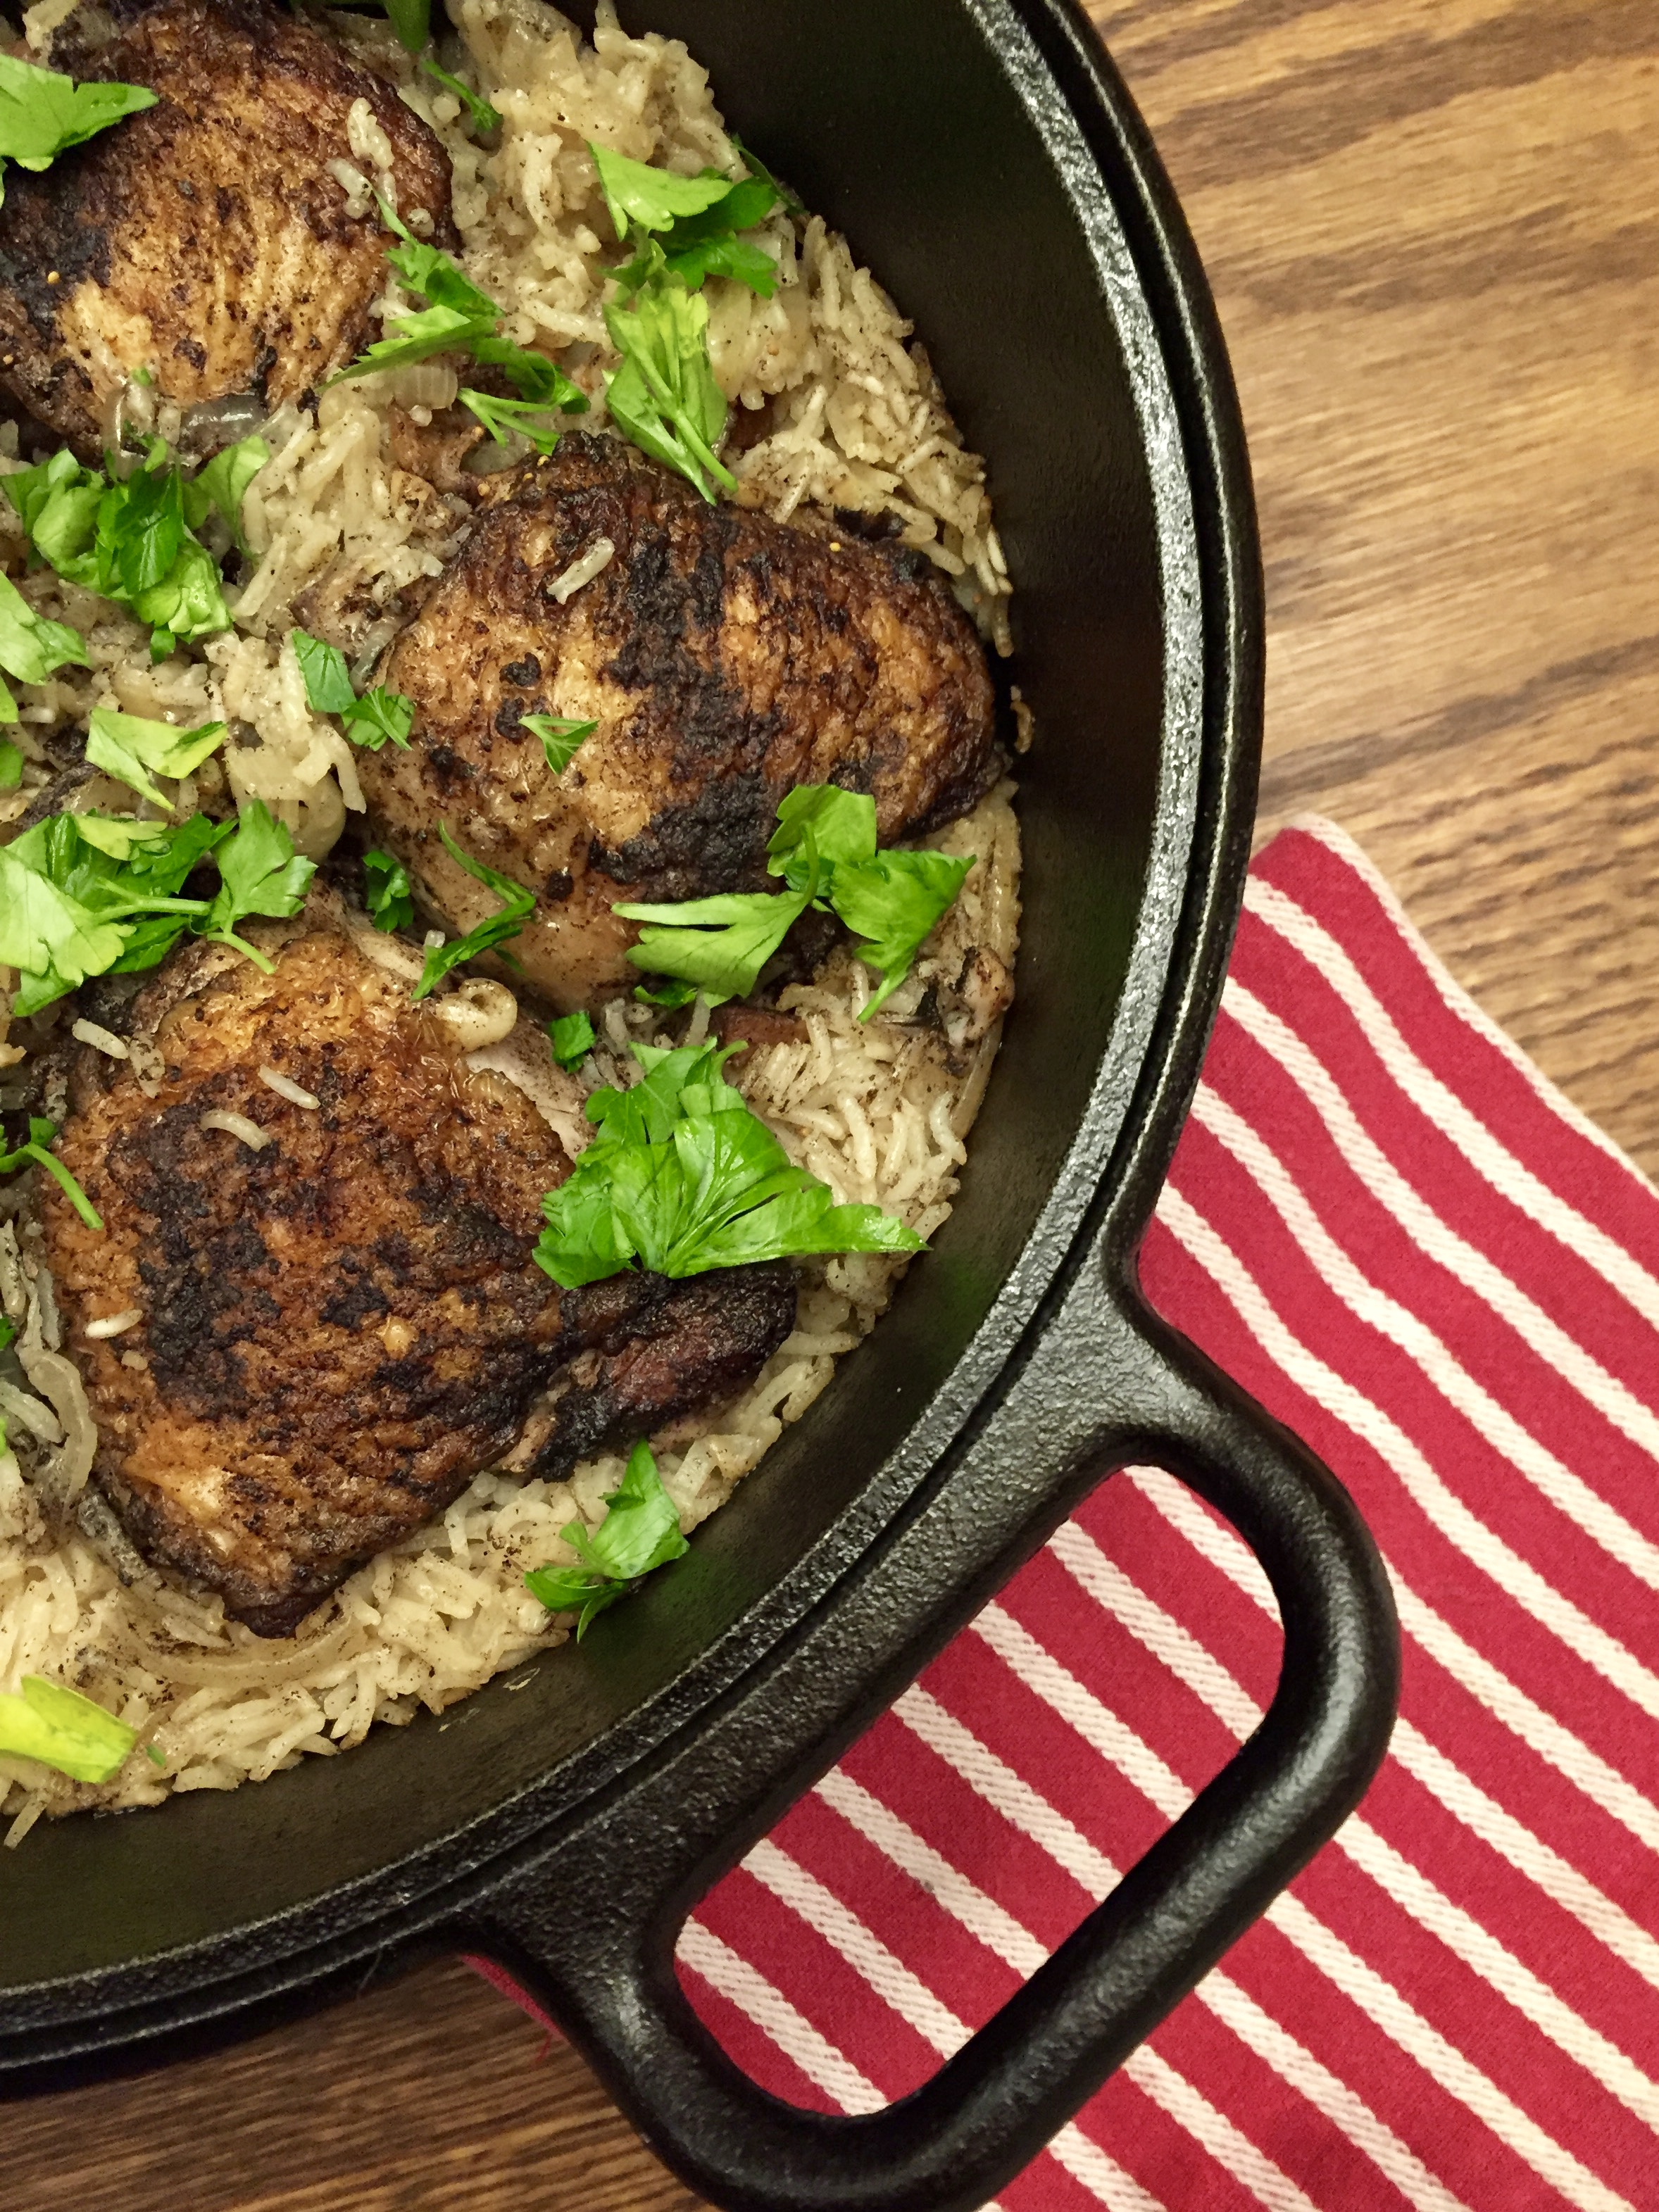 One pot moroccan chicken rice bake as a jew with sephardic routes he has always been very drawn to north african and middle eastern foods he loves as do i the spices the plentiful use of forumfinder